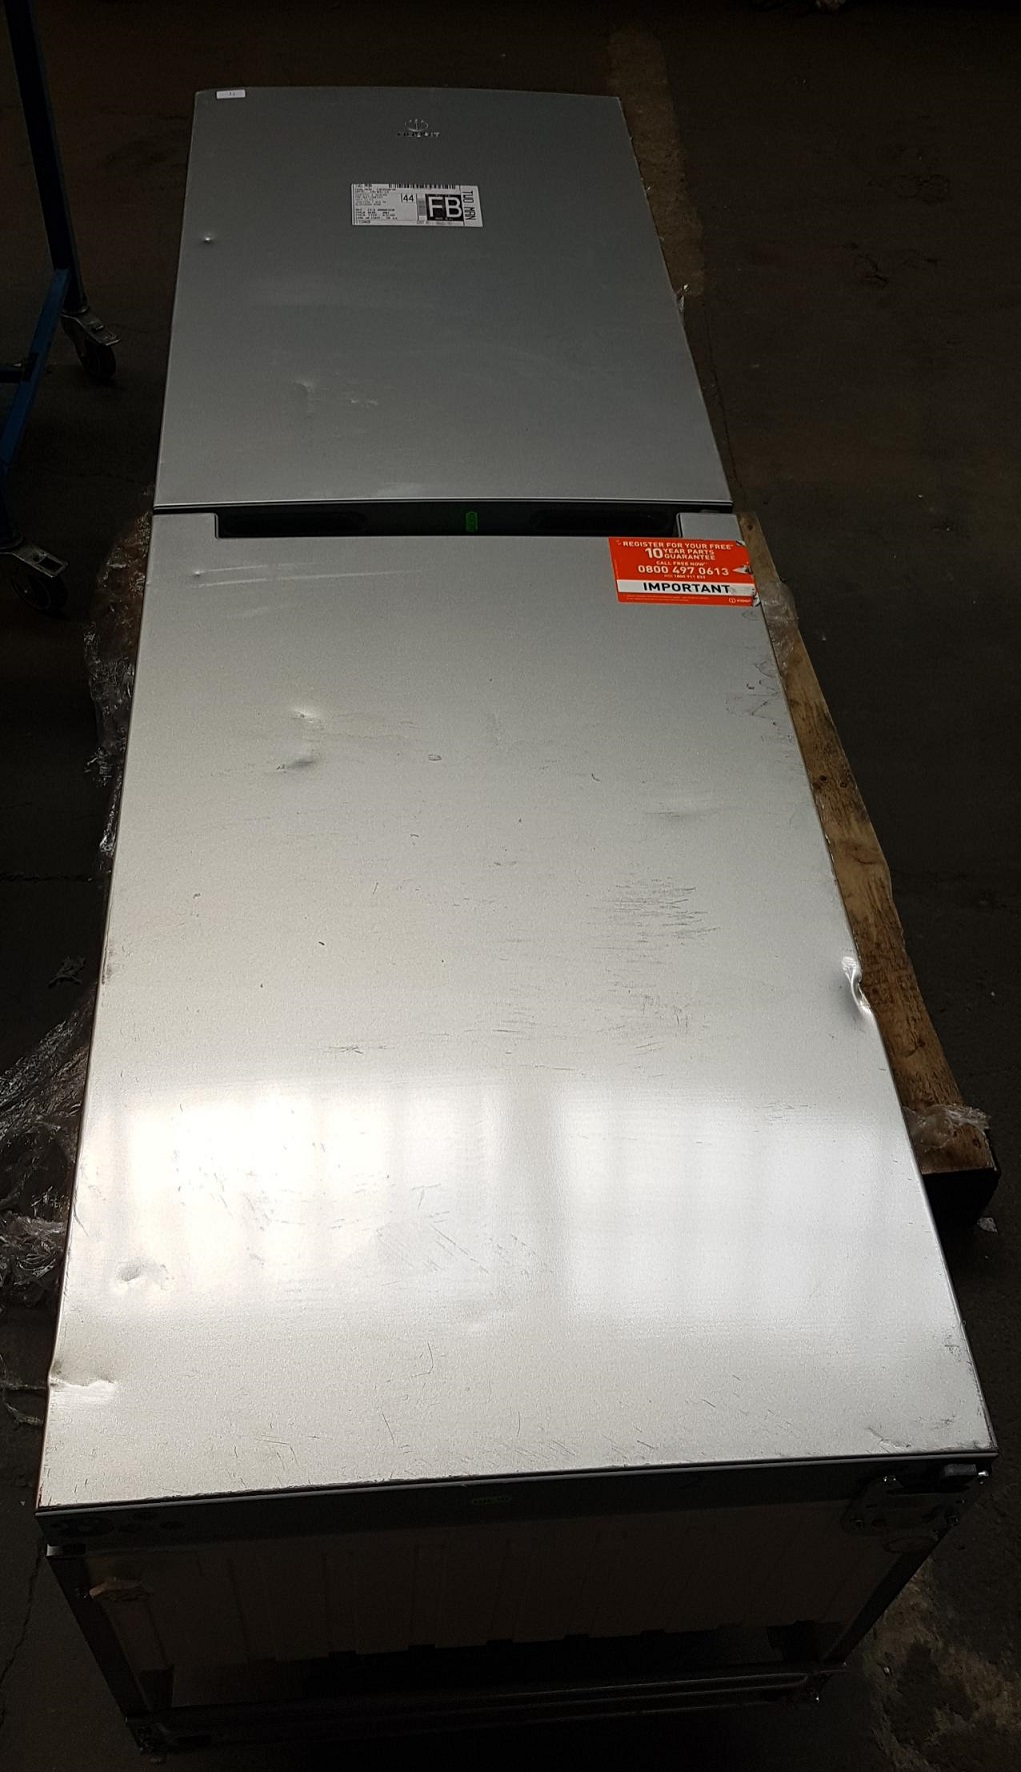 Lot 4 - 1 UNPACKAGED GRADE B UNTESTED INDESIT LD85F1S FROST FREE FRIDGE FREEZER IN SILVER, SCUFFS TO DOORS